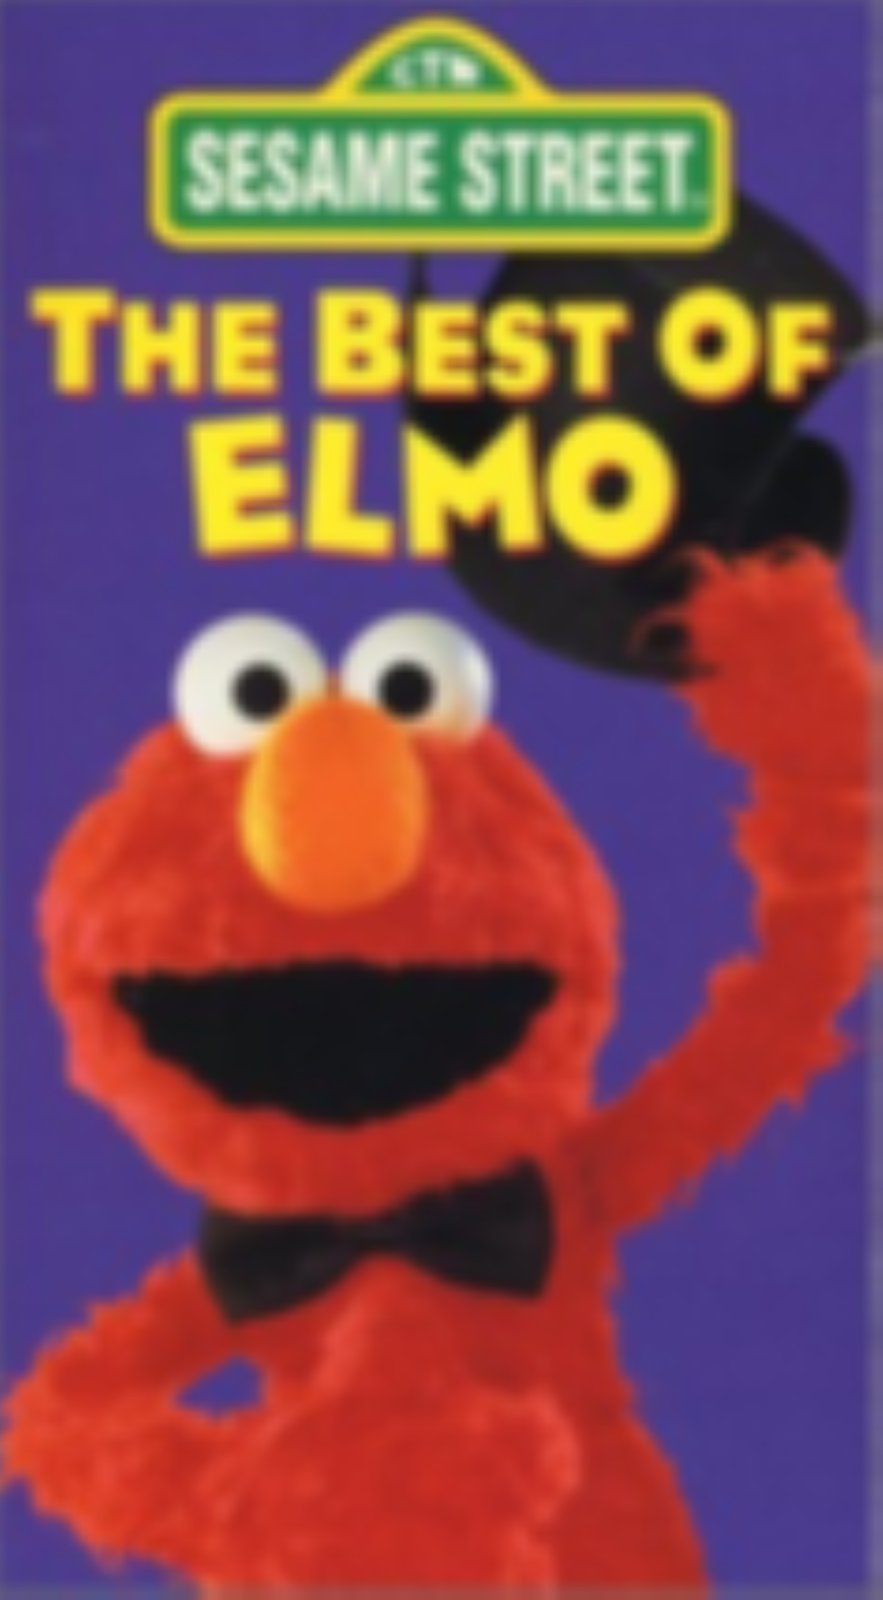 Sesame Street - The Best of Elmo Vhs